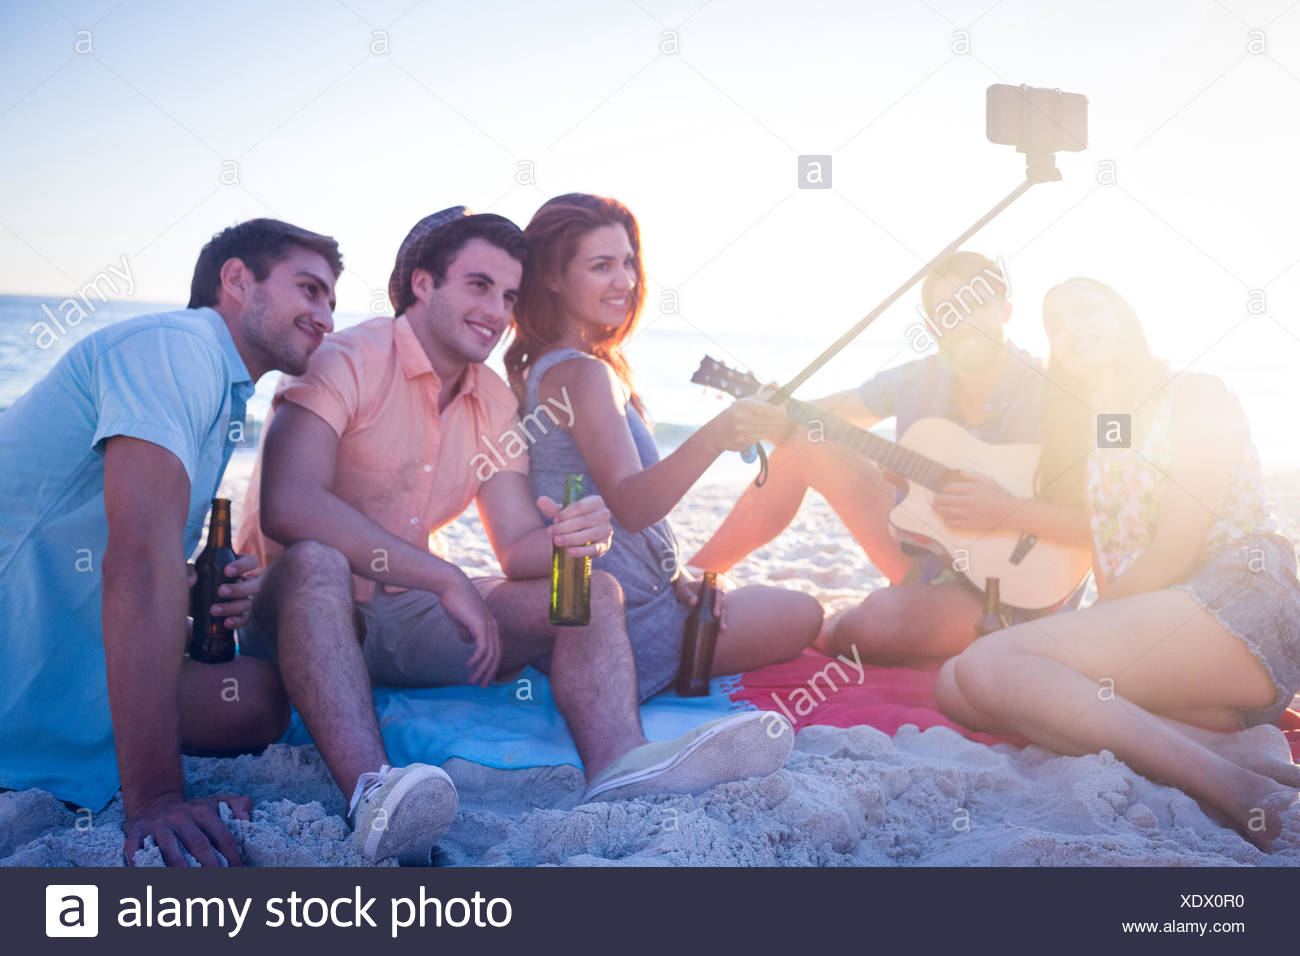 Happy hipsters taking pictures with selfie stick - Stock Image